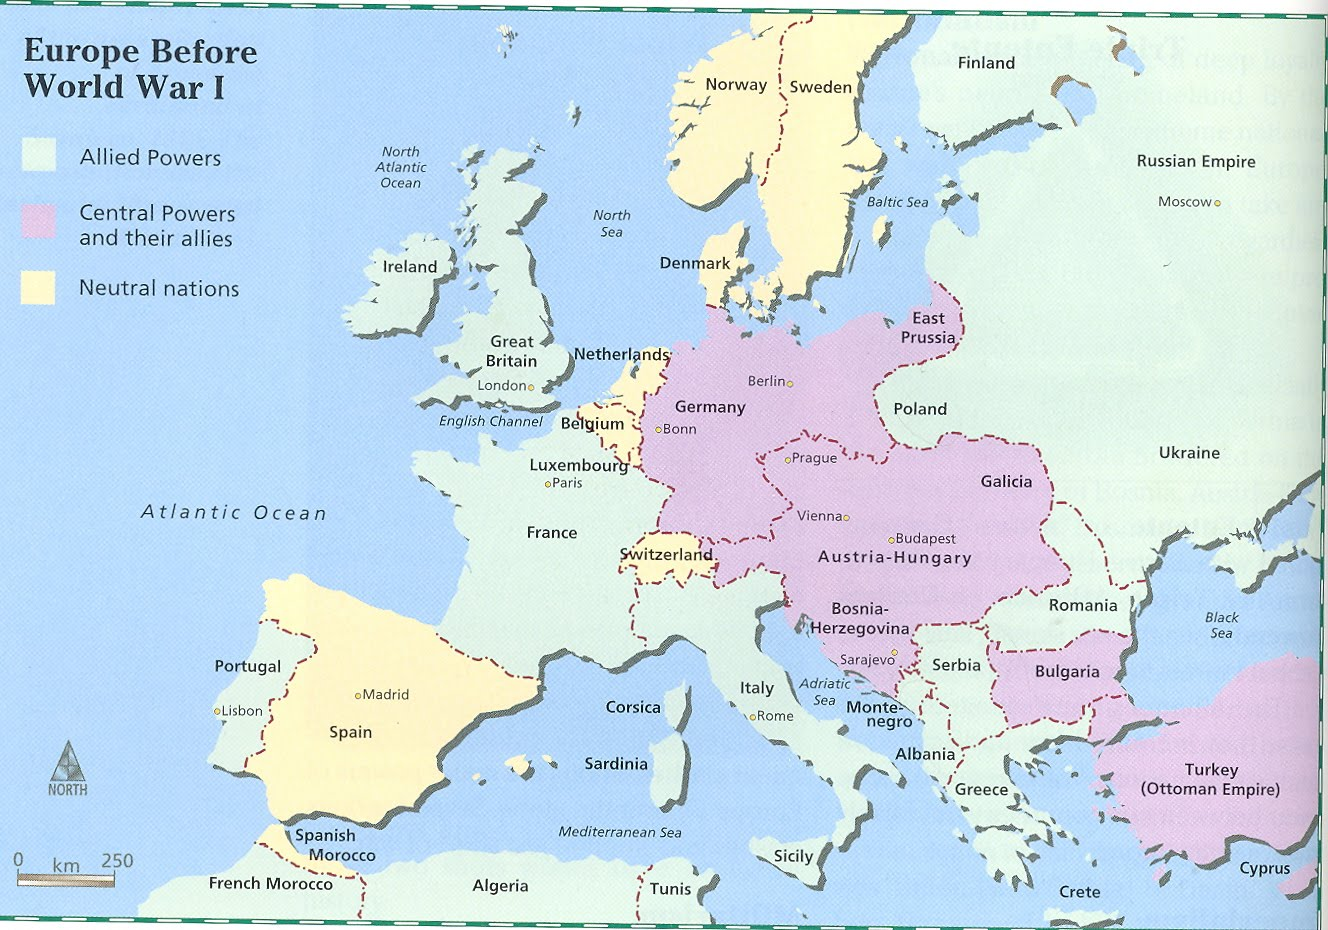 Map europe before world war europe before ww1 92237b4646d50d45f18117677413c070 redrawing the map within europe after world war 1 map wwone51 europe1914 gumiabroncs Image collections